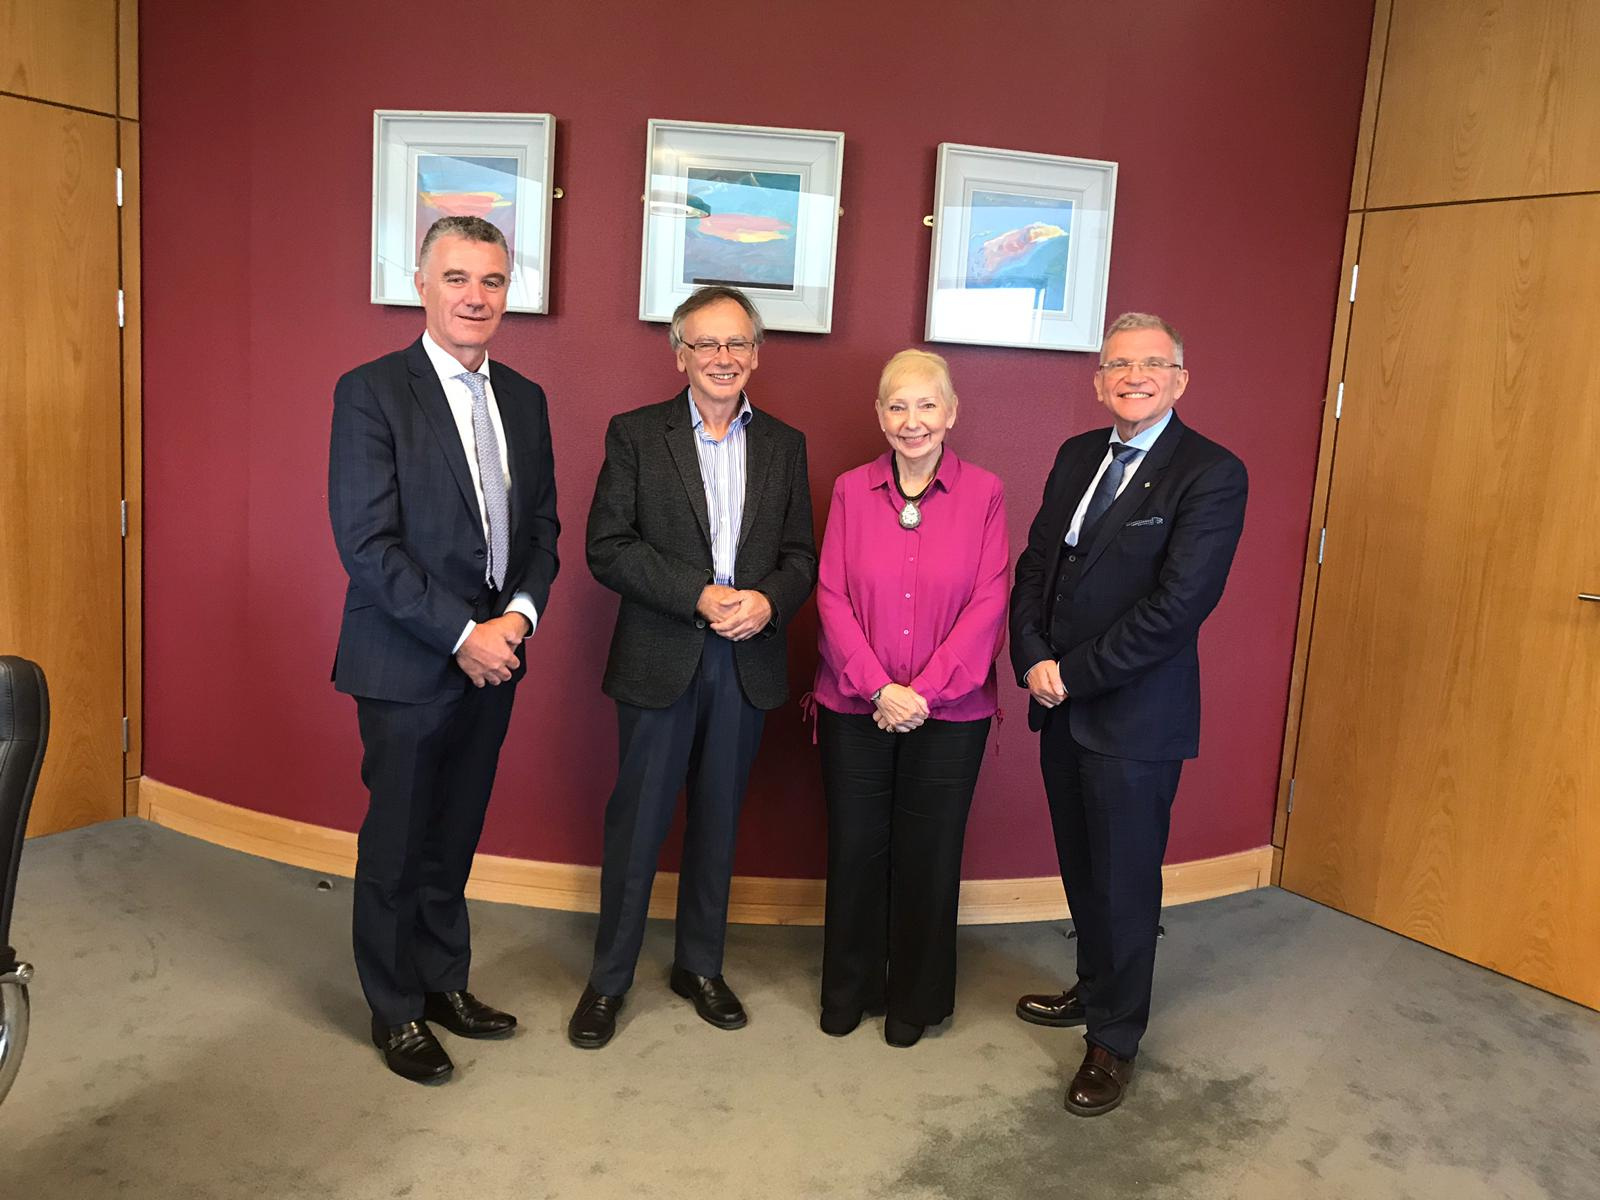 Pictured from left are Dr Michael Bergin, Head of Applied Arts, WIT; Prof Willie Donnelly, President, WIT; ProfYvonne McEwen, University of Wolverhampton; ProfJohn Wells, Head of the School of Health Science, WIT